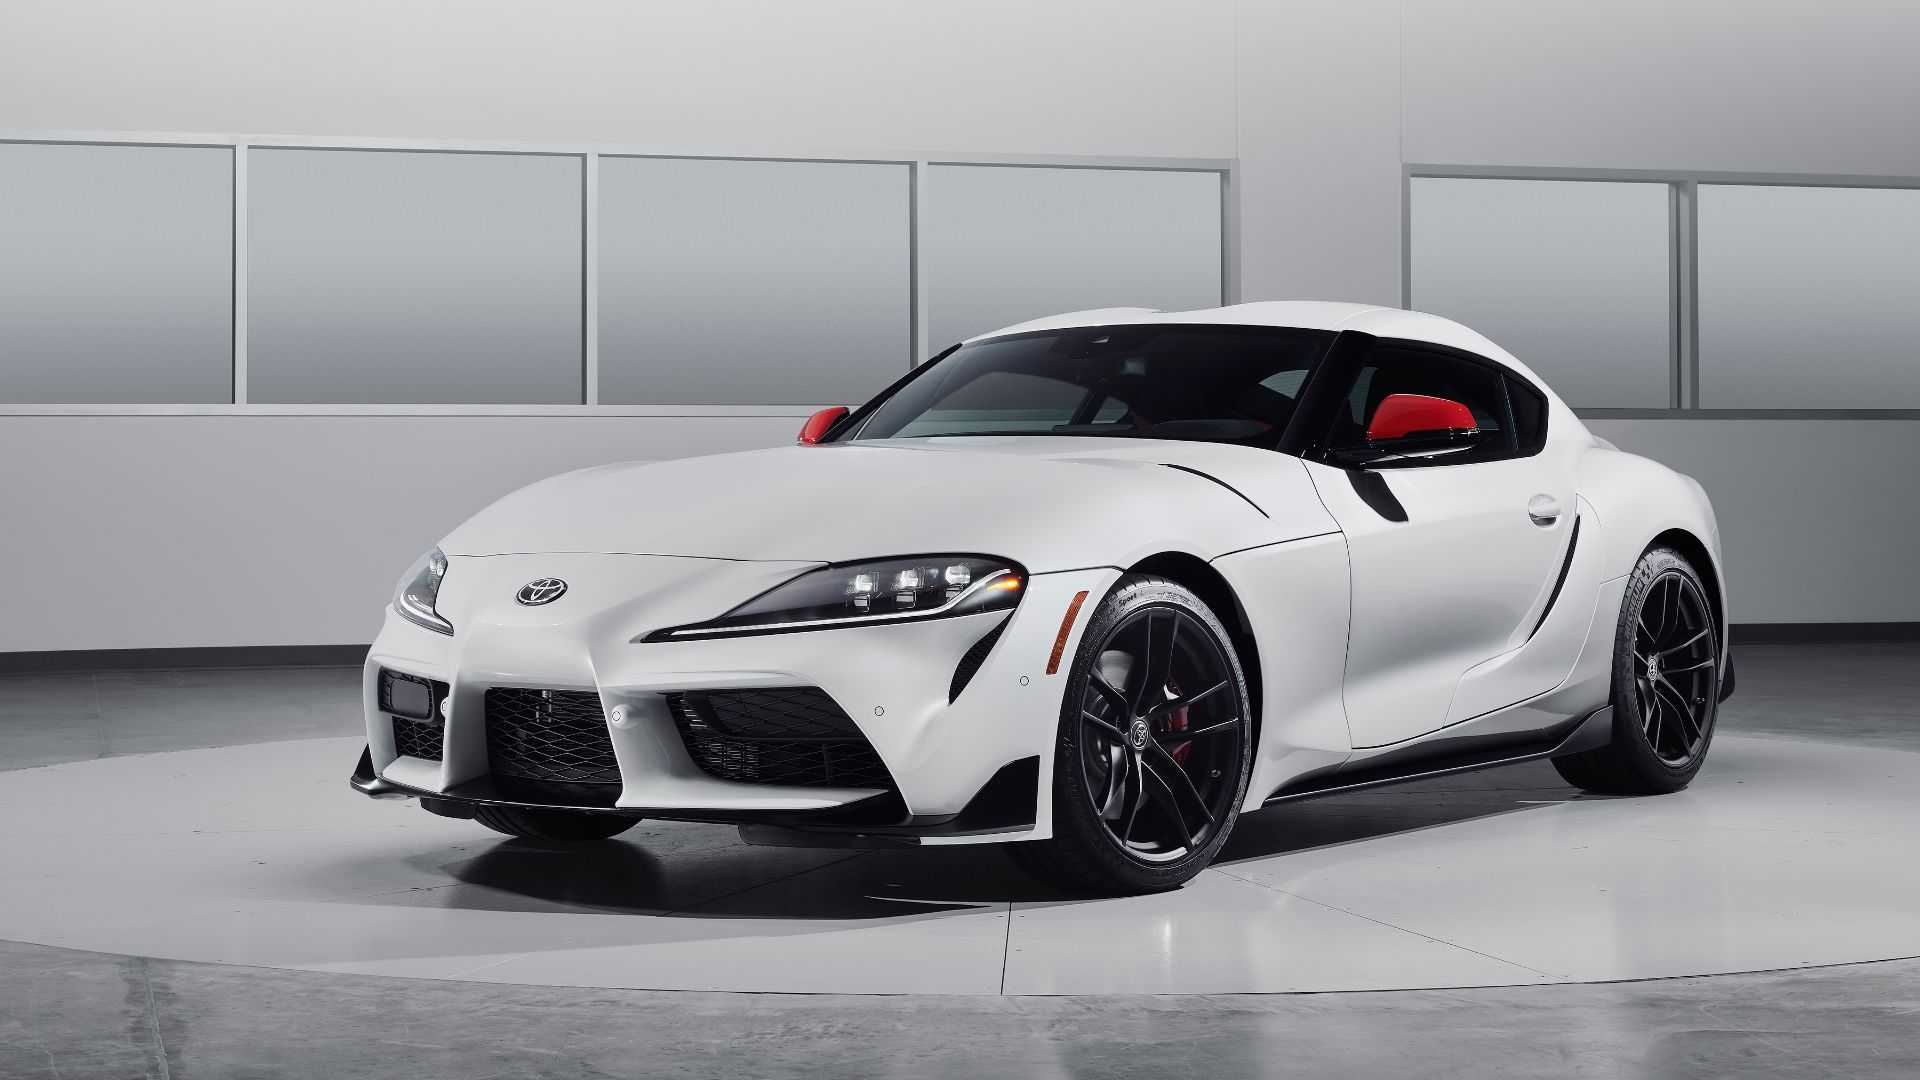 63 A Toyota Supra 2019 Price And Review